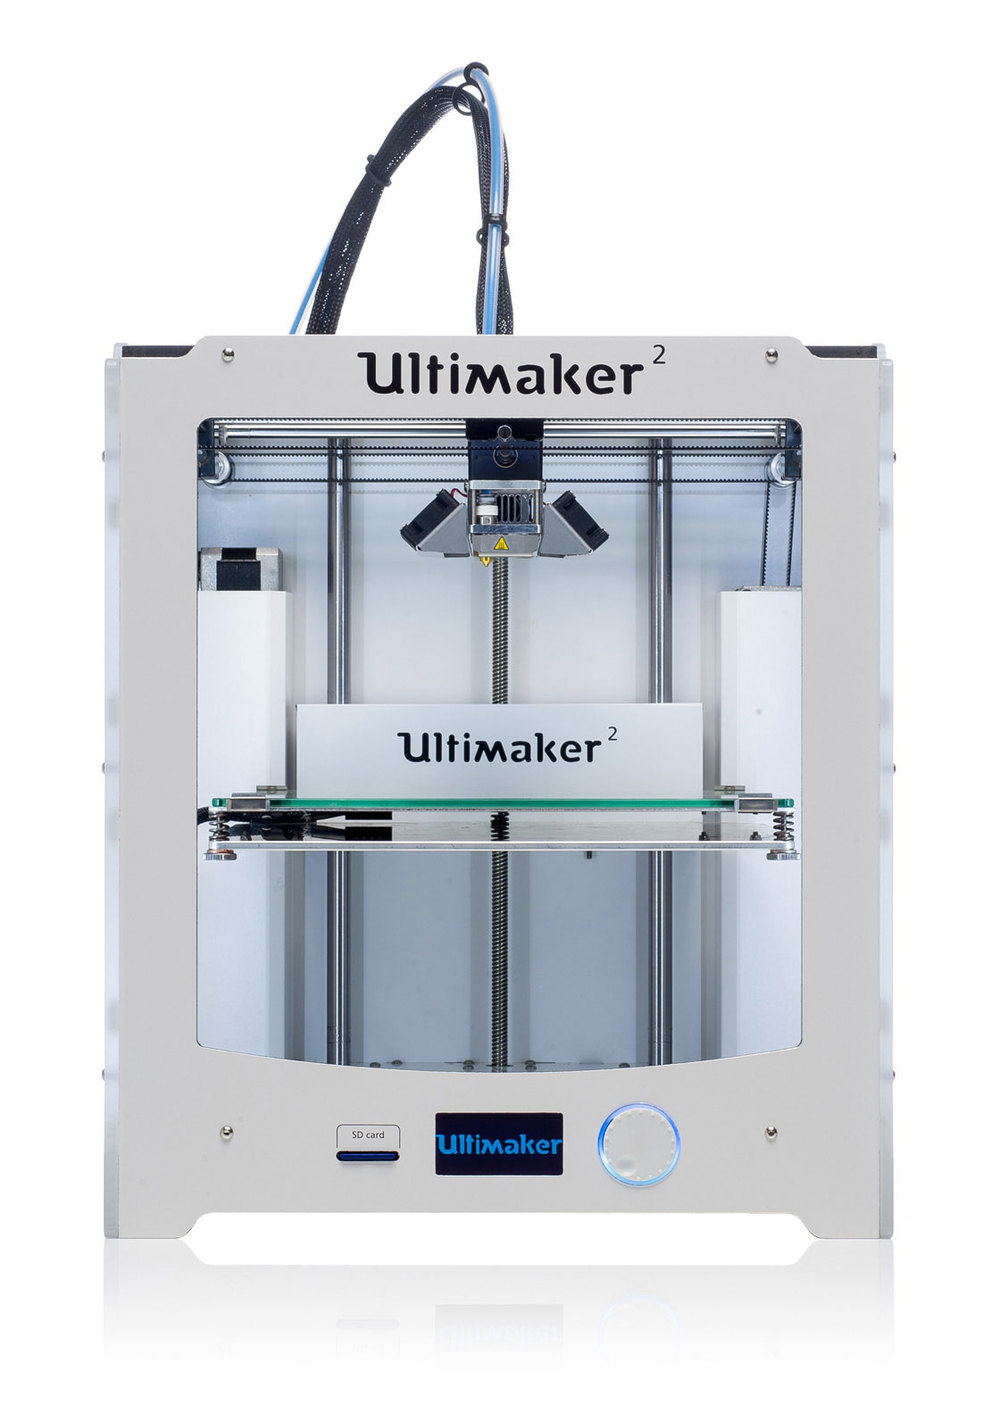 Ultimaker 2. Image Courtesy: Ultimaker official website.